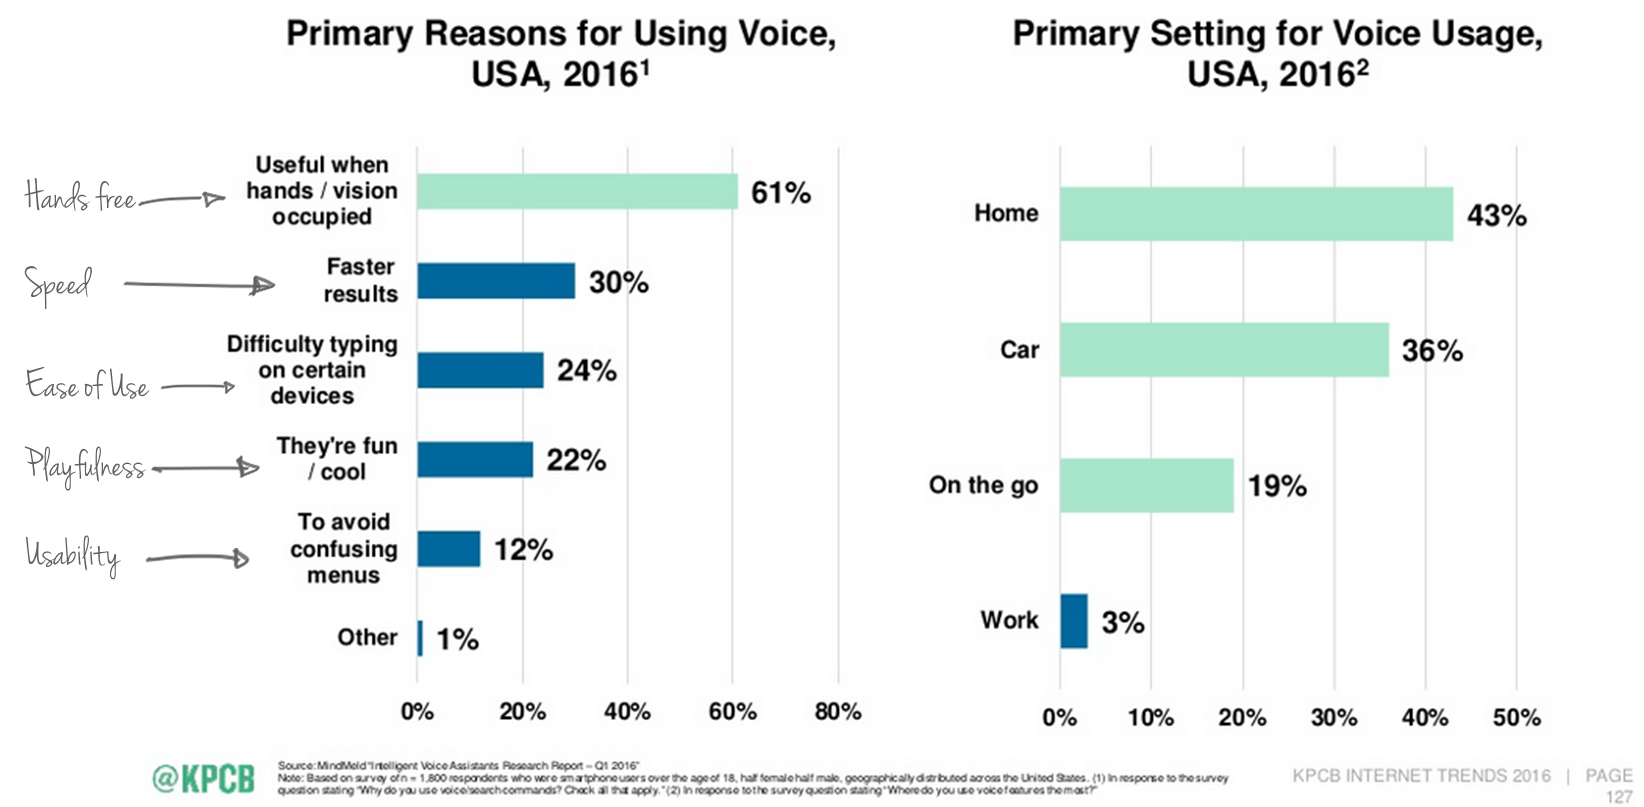 Top reasons why people use voice-enabled devices